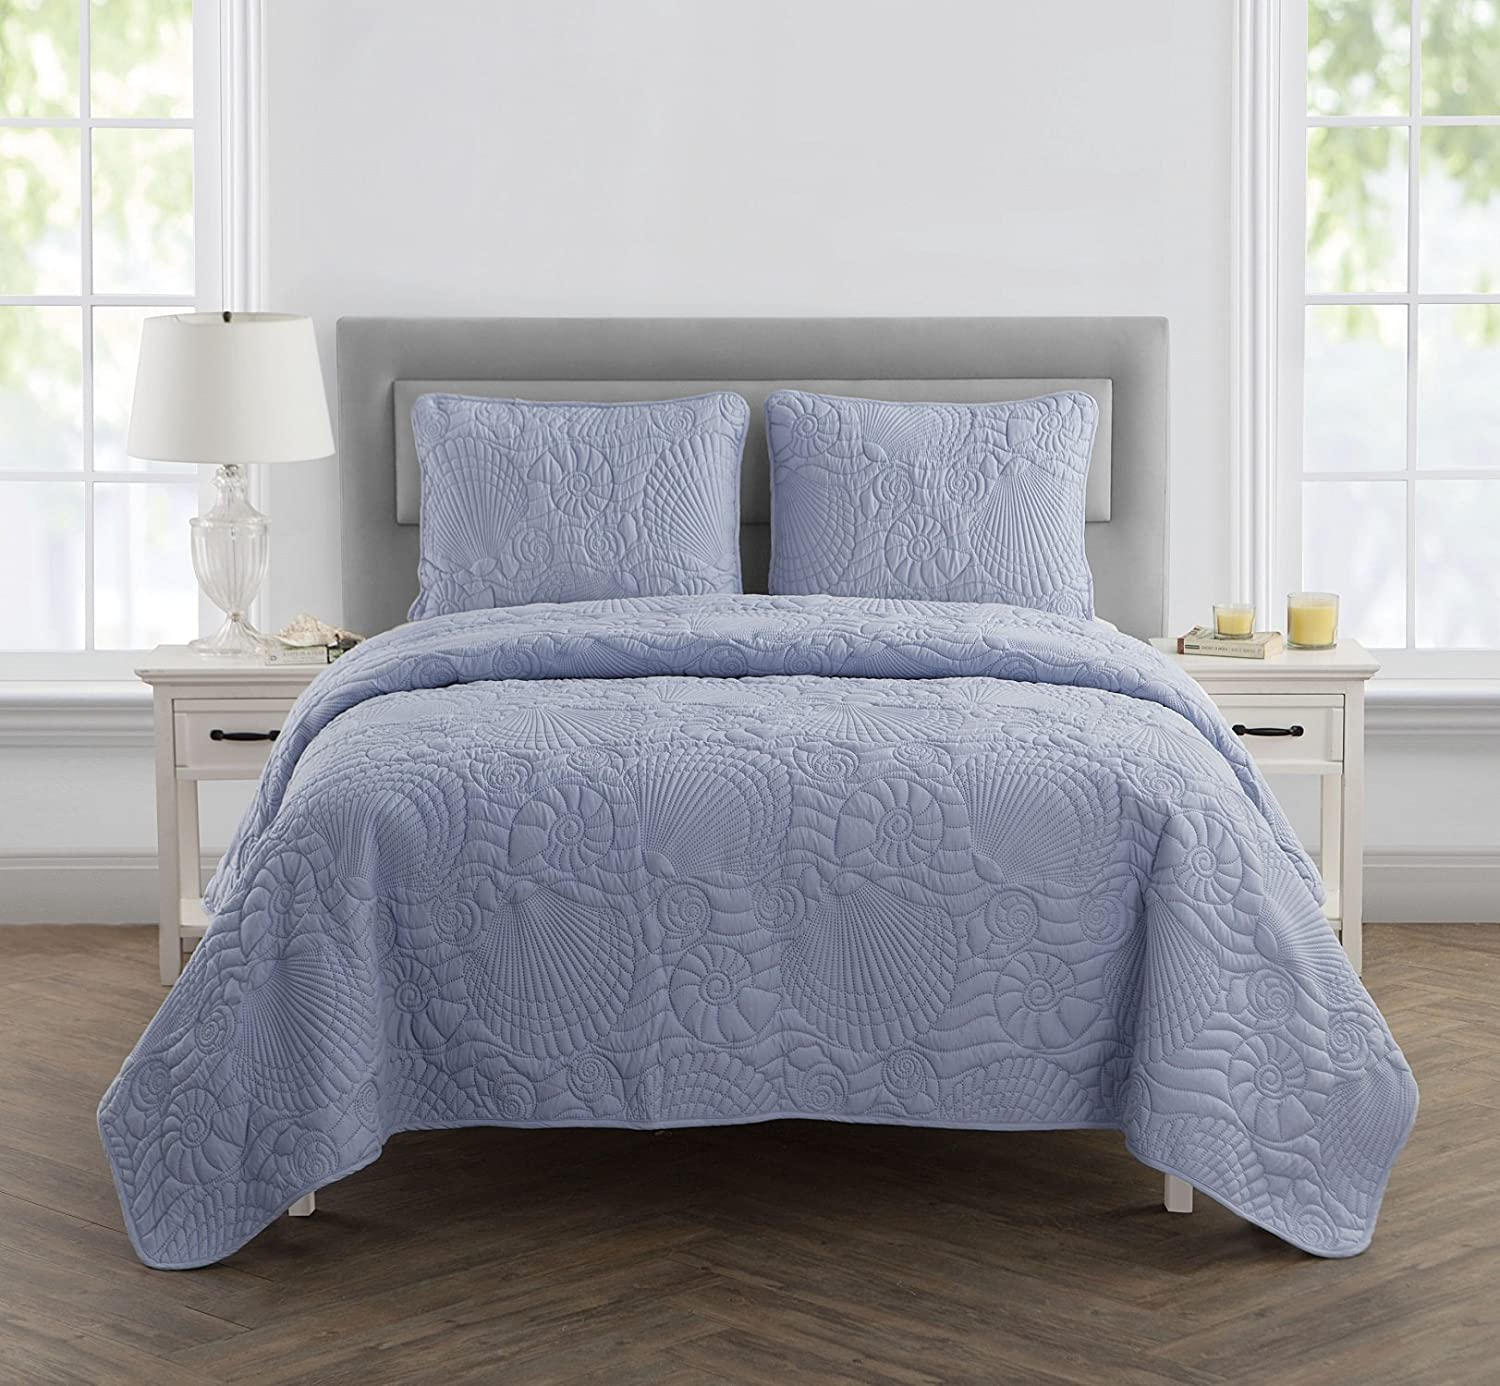 VCNY Home 3 Piece Shells Quilt Set, King, bluee